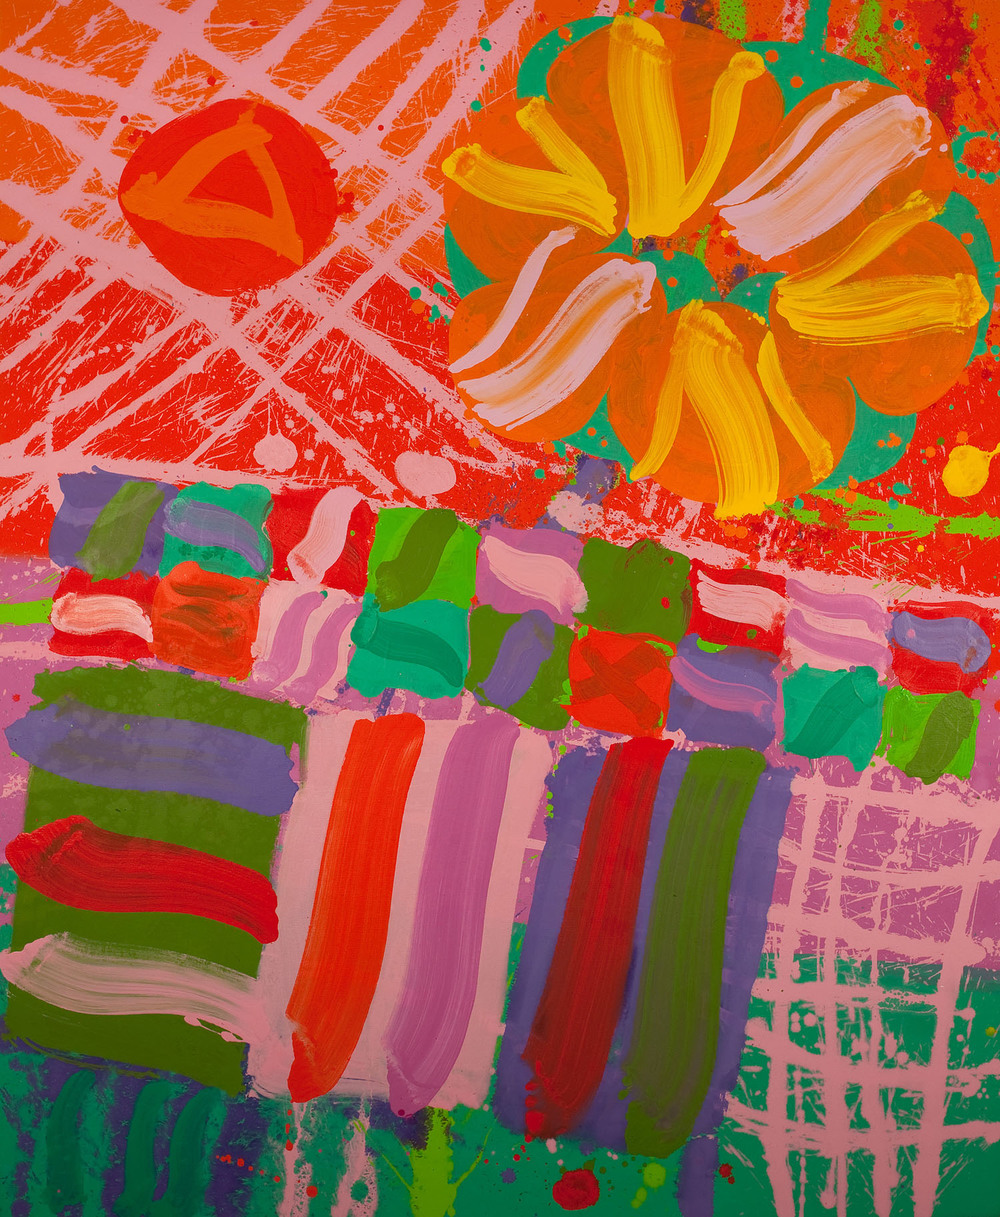 Albert Irvin 'Hope' 2010 acrylic on canvas 183x153cm.jpg